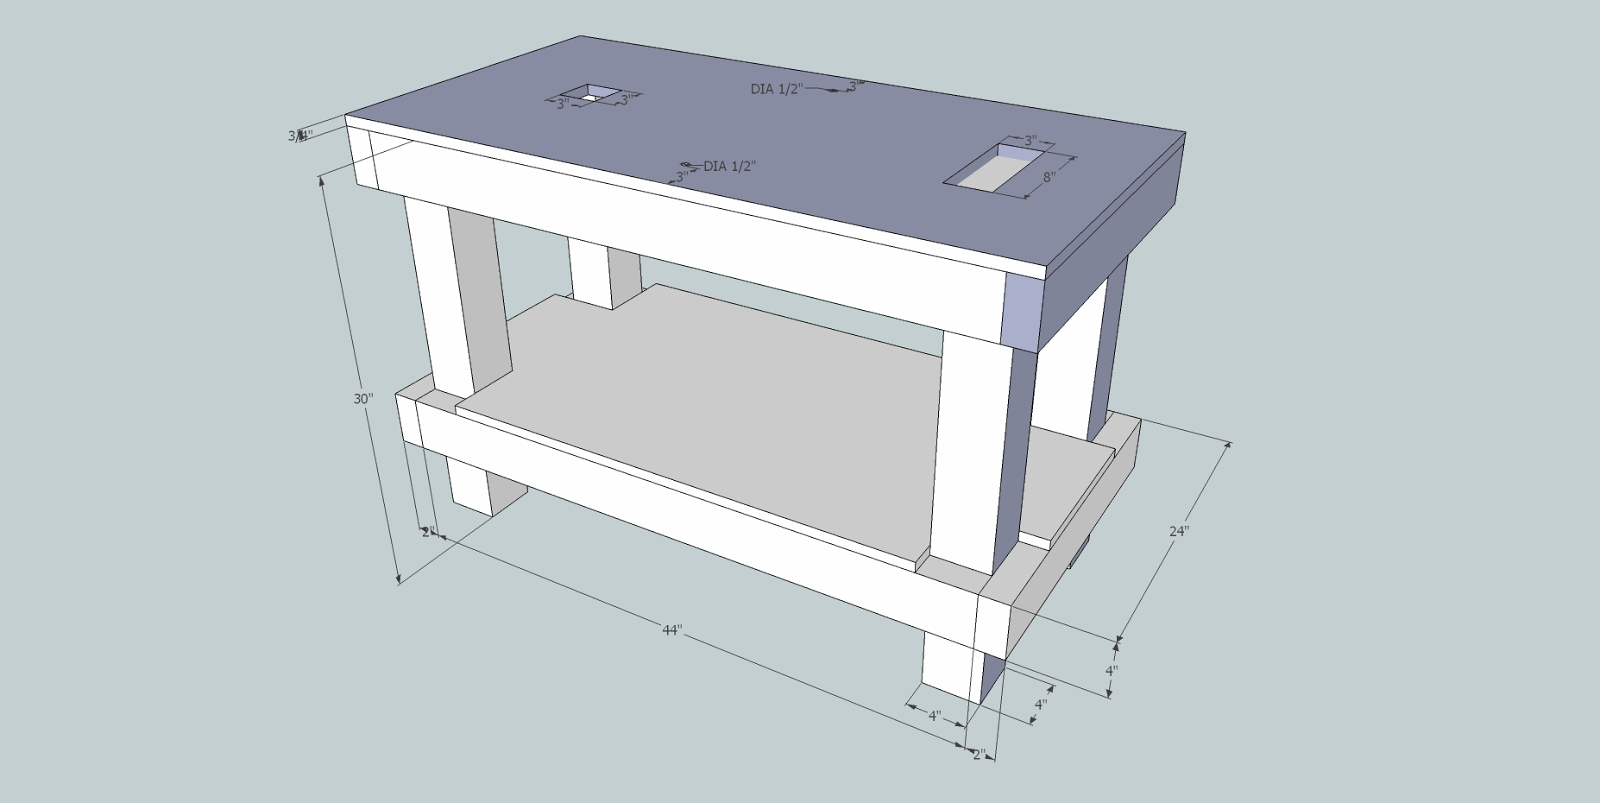 Thinking wood project 2 diy portable 3 in 1 workbench table saw anything the work table is no exception heres a sketchup 3d plan of my design that i tinkered with until i had most of the elements worked out keyboard keysfo Images